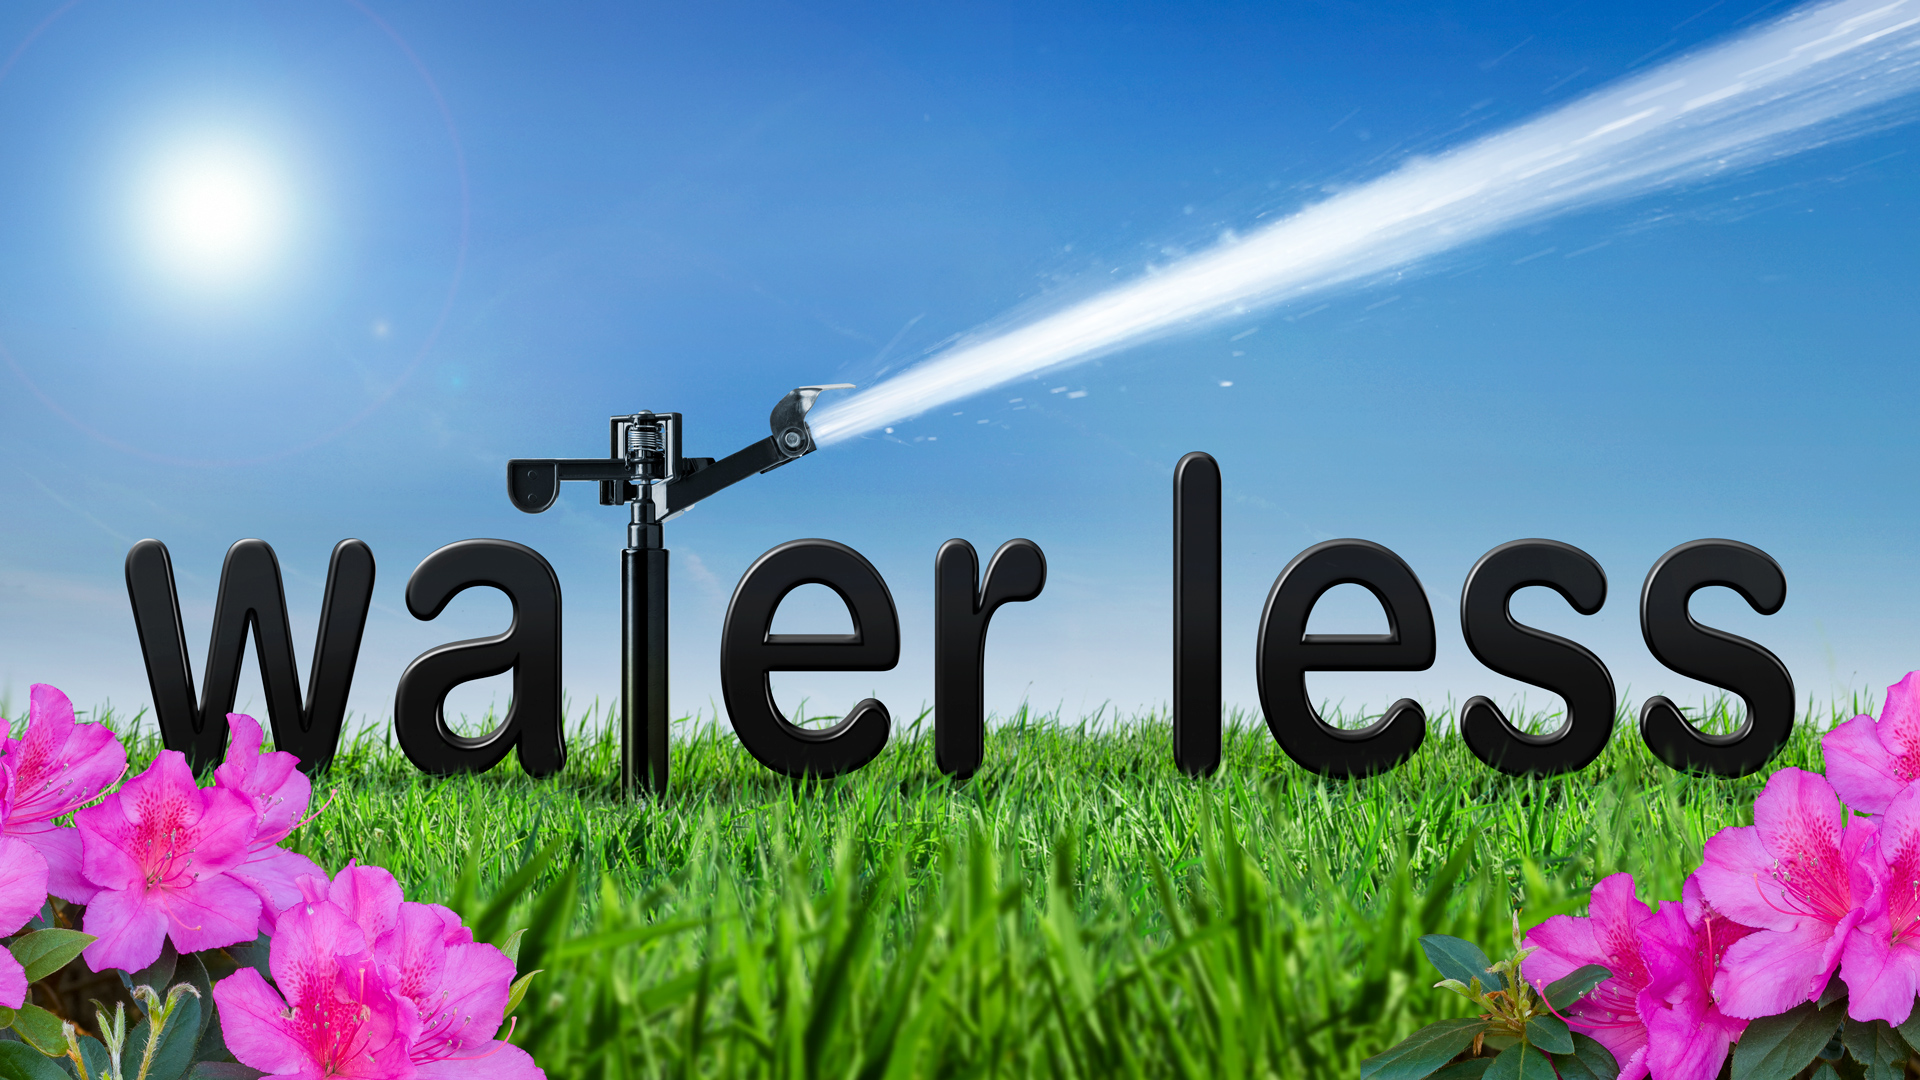 Water less